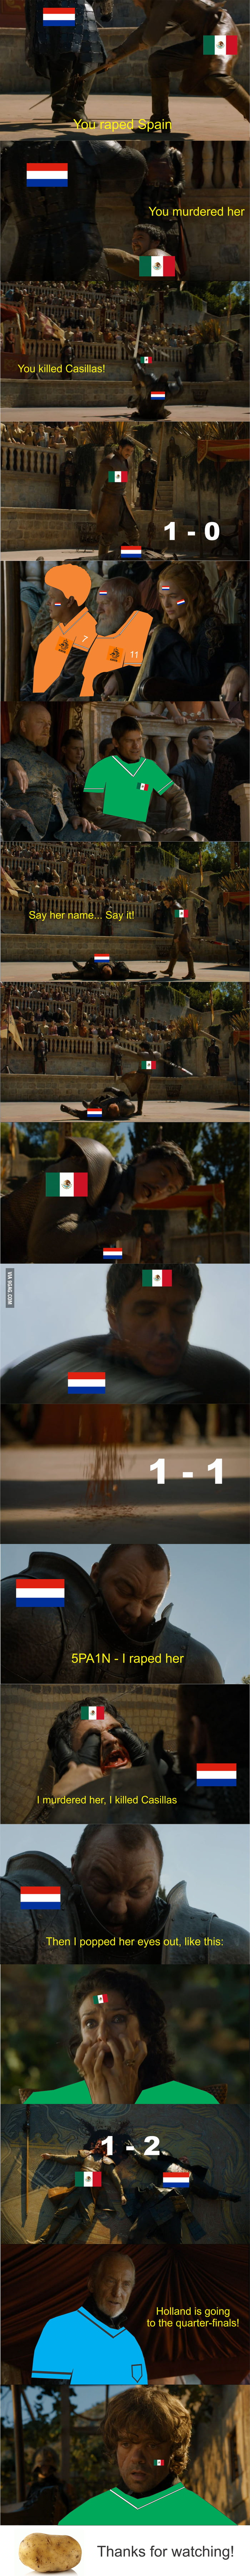 What Nederland - Mexico felt like...